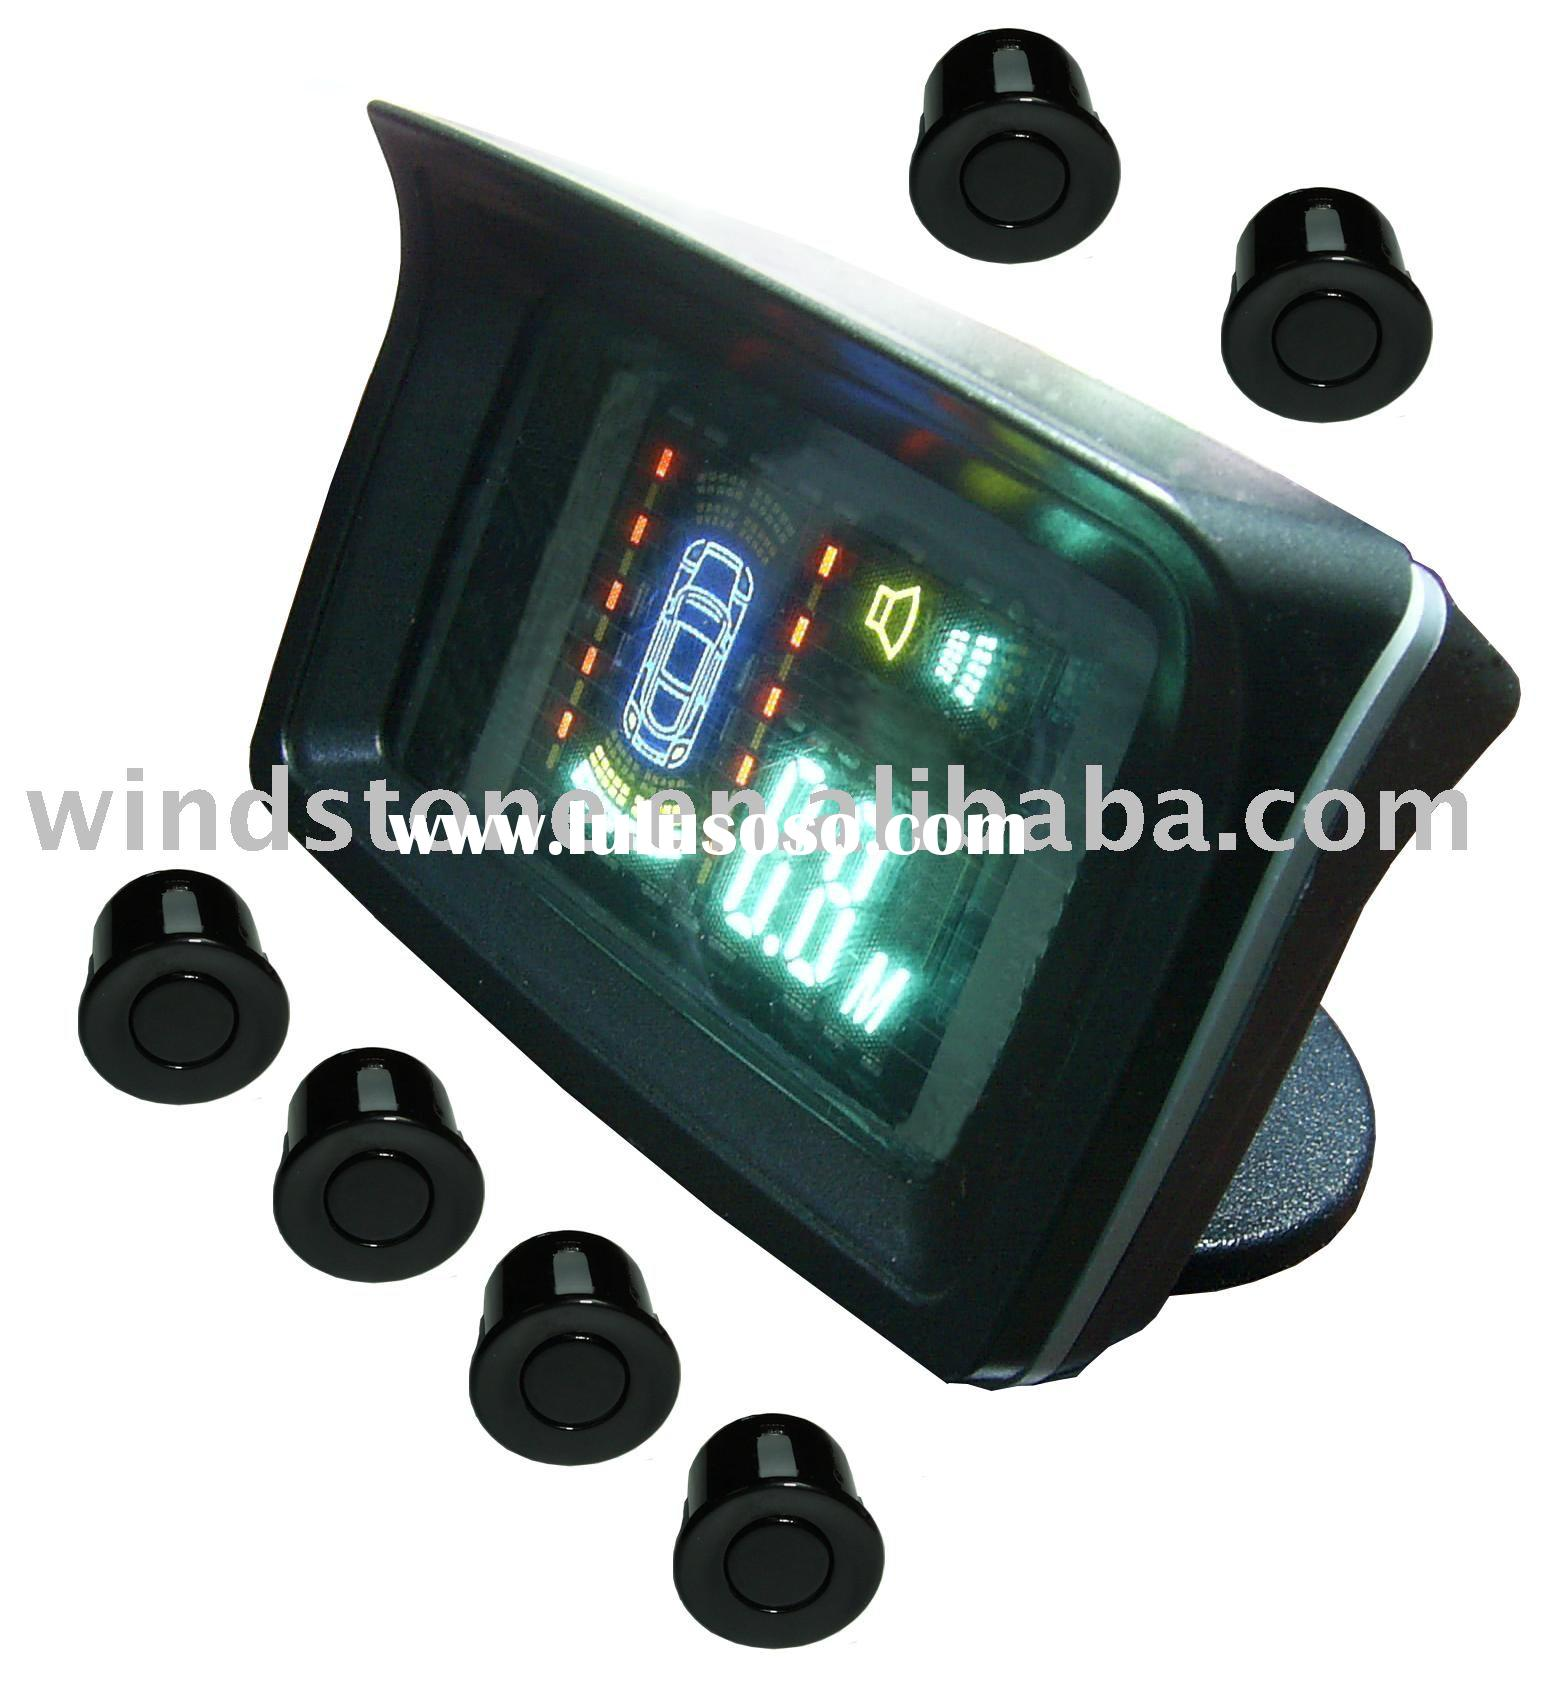 Car Vacuum Fluorescent Display VFD Display & HUD Display Auto Parking System(RD088)